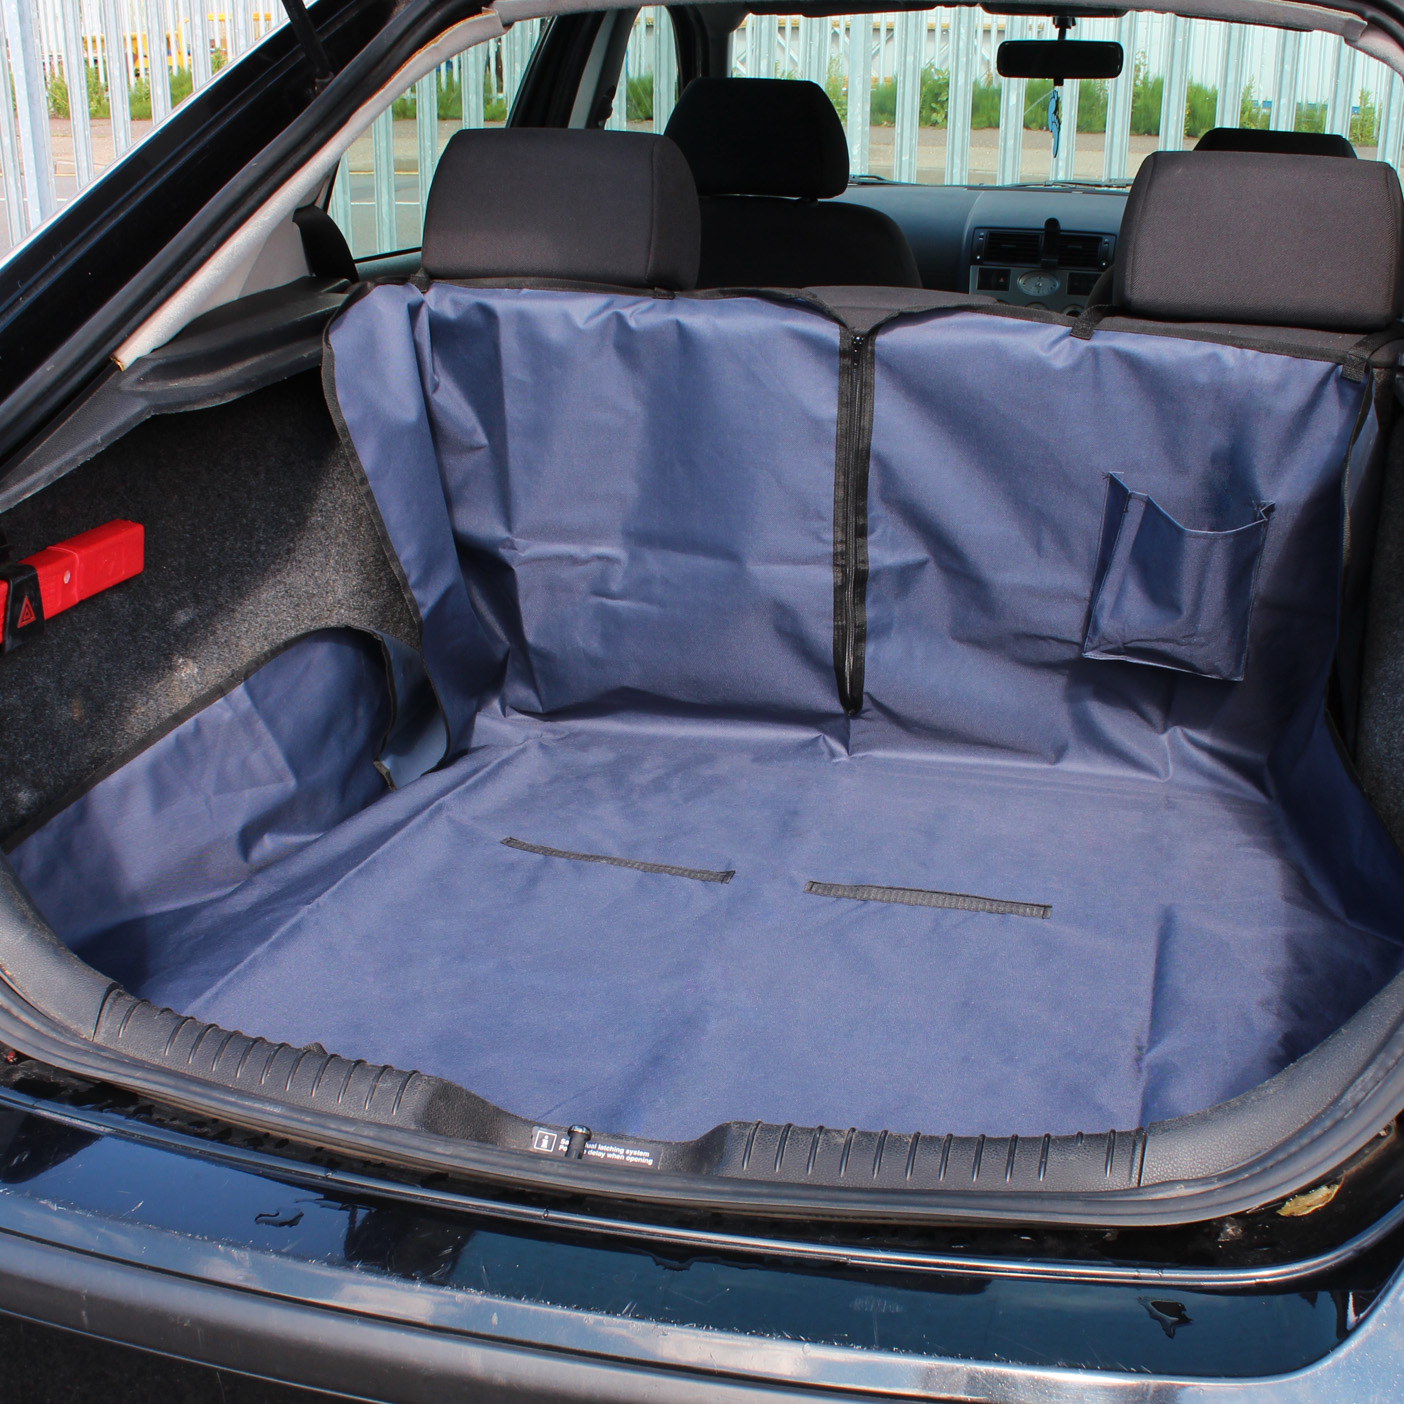 me my pet car boot liner rear seat cover protector spill proof dog puppy 4x4 ebay. Black Bedroom Furniture Sets. Home Design Ideas